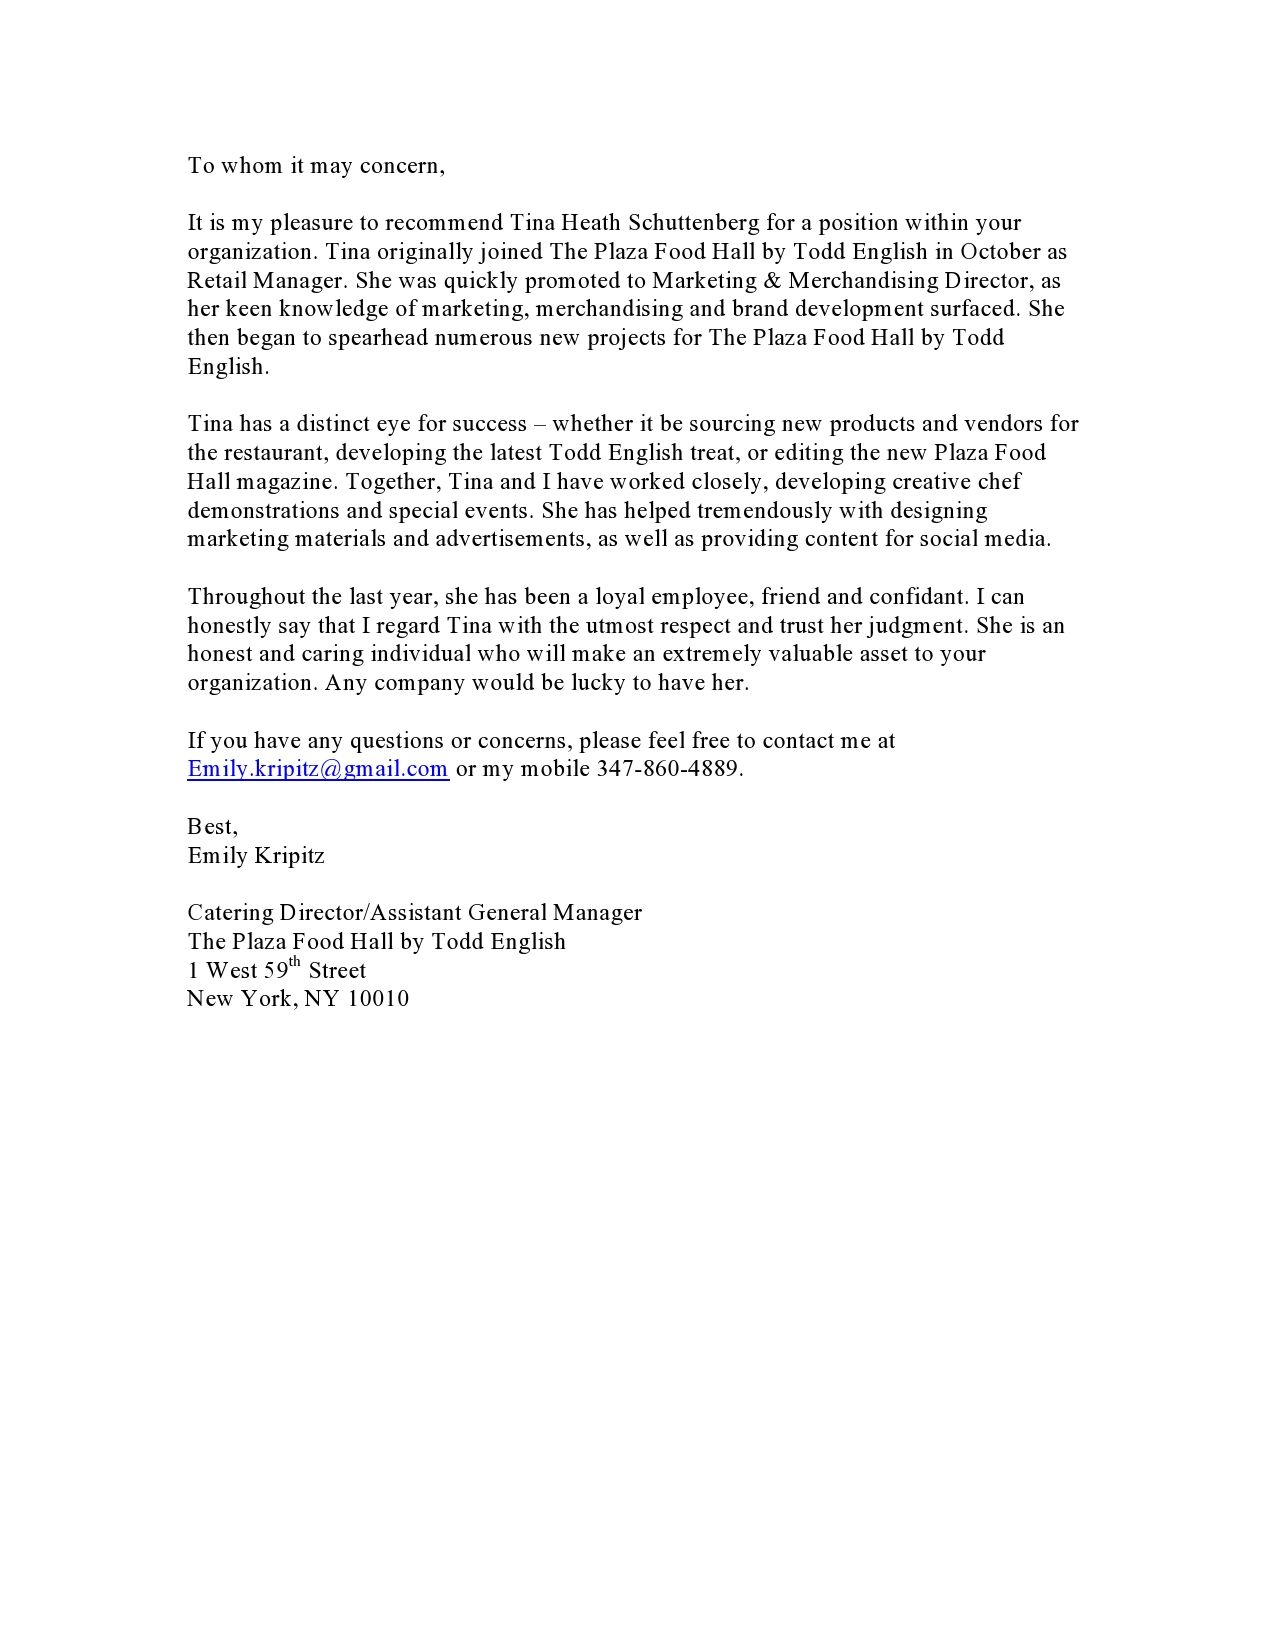 Reference Letter From Emily Former Catering Director At Todd